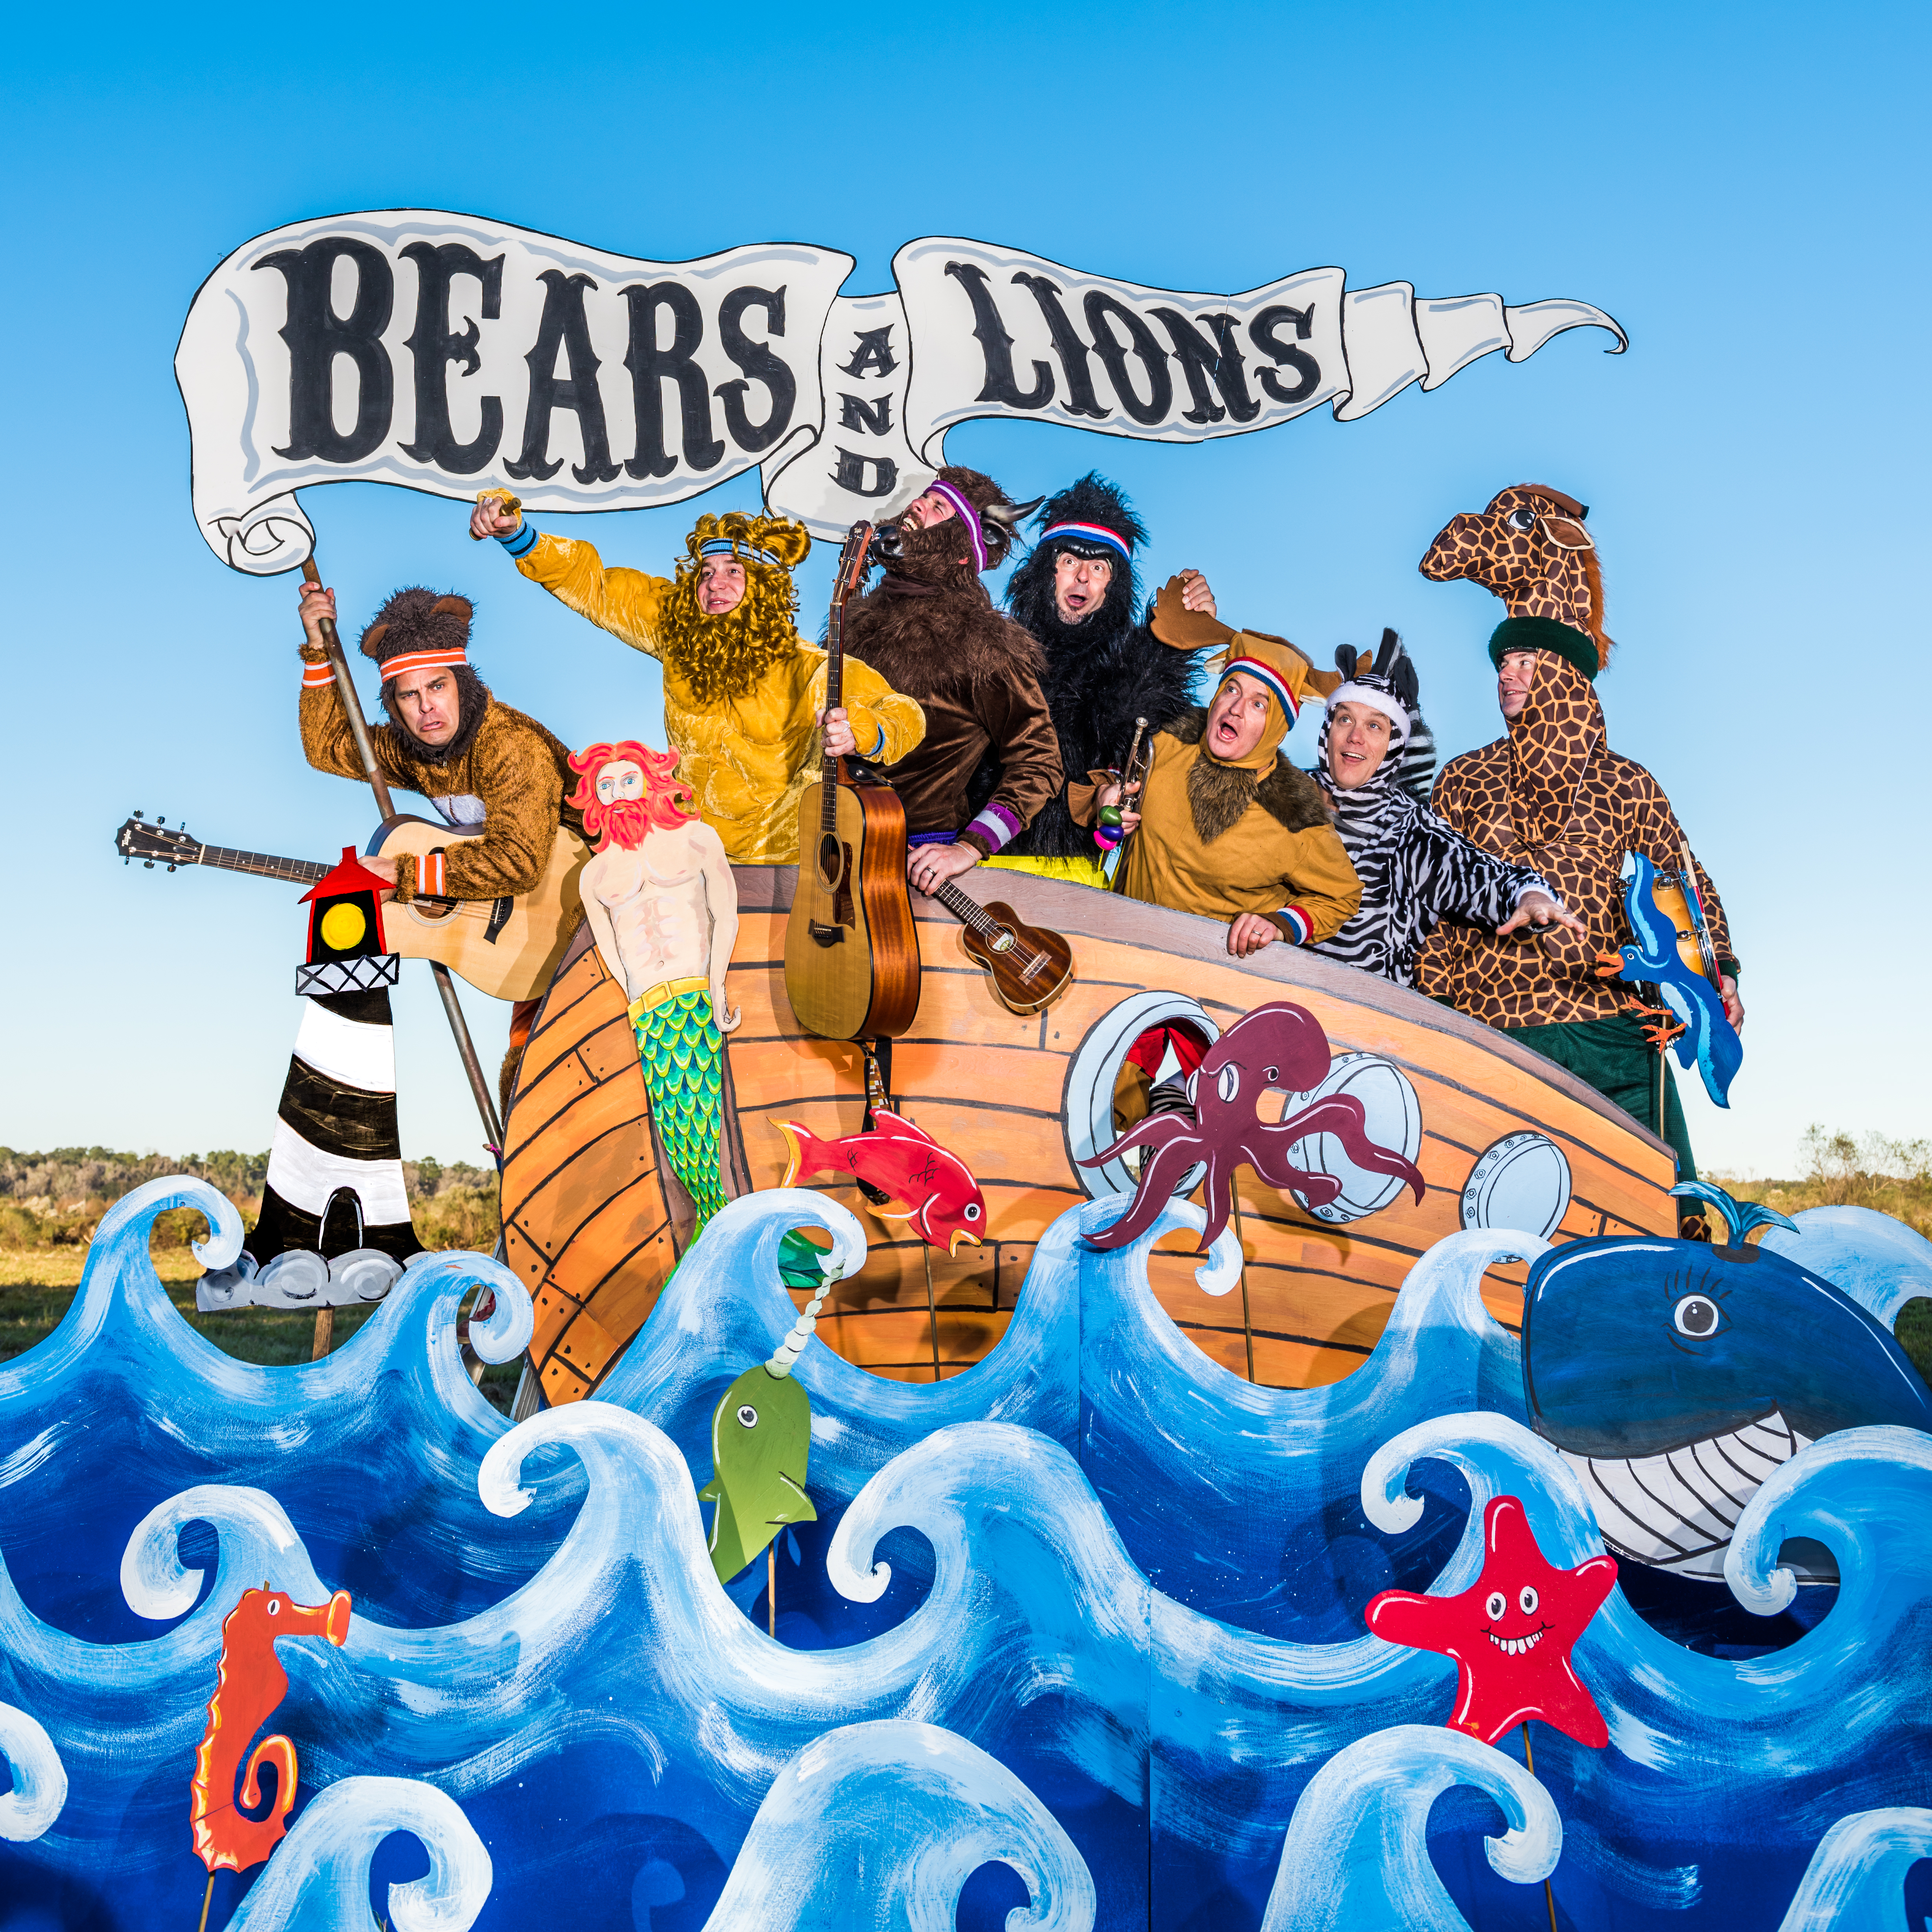 Bears and Lions New album!